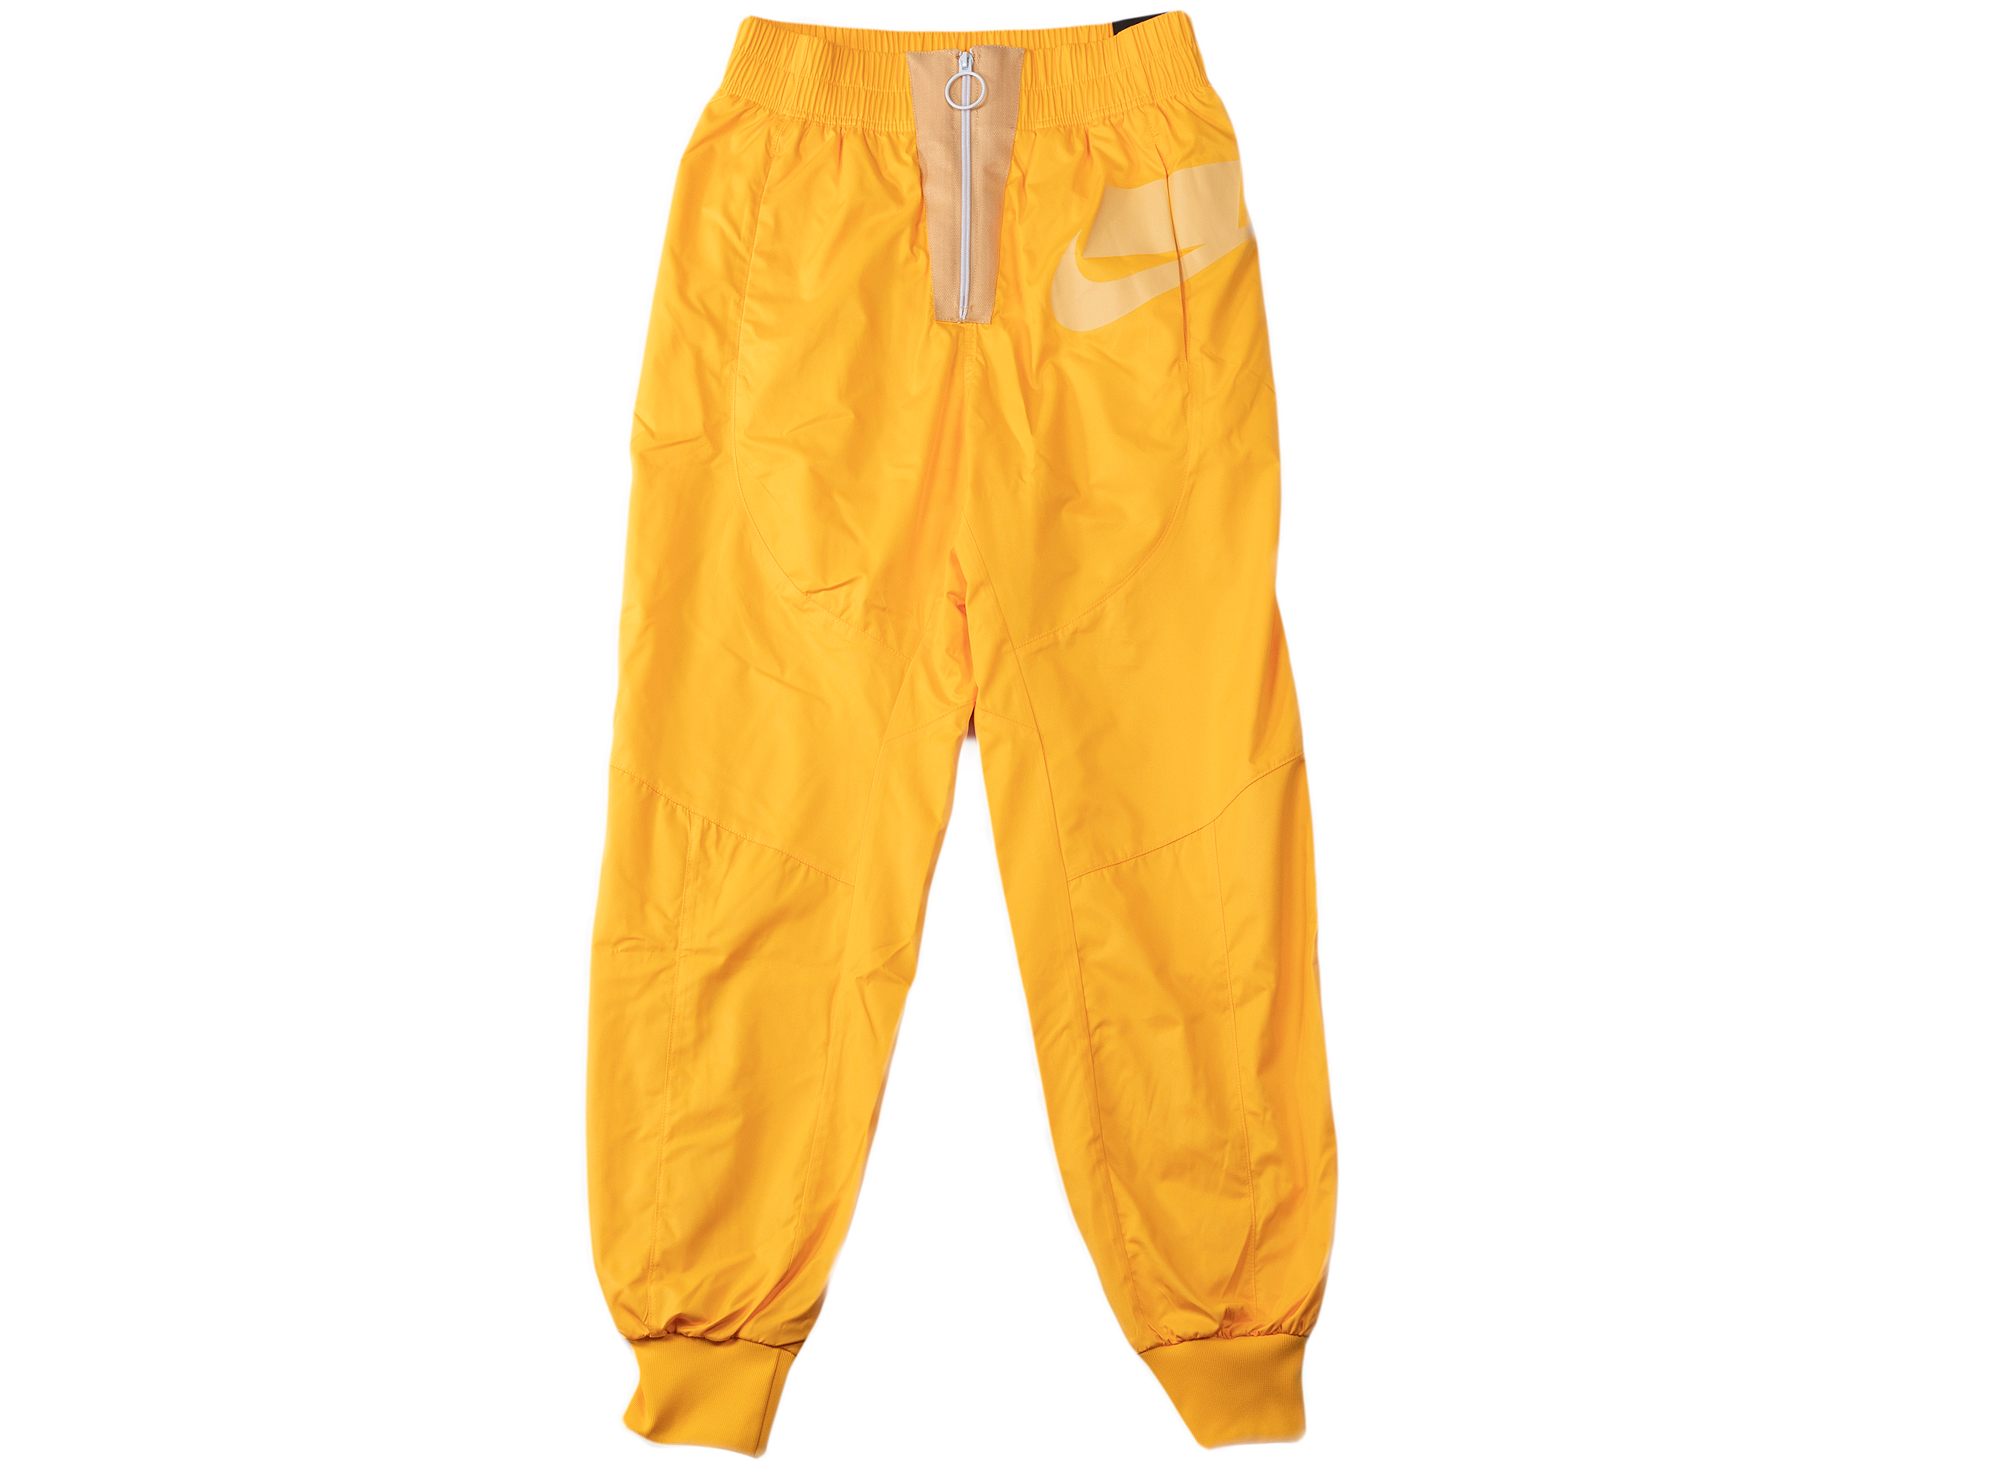 Women's Nike Sportswear NSW Woven Pants in Orange